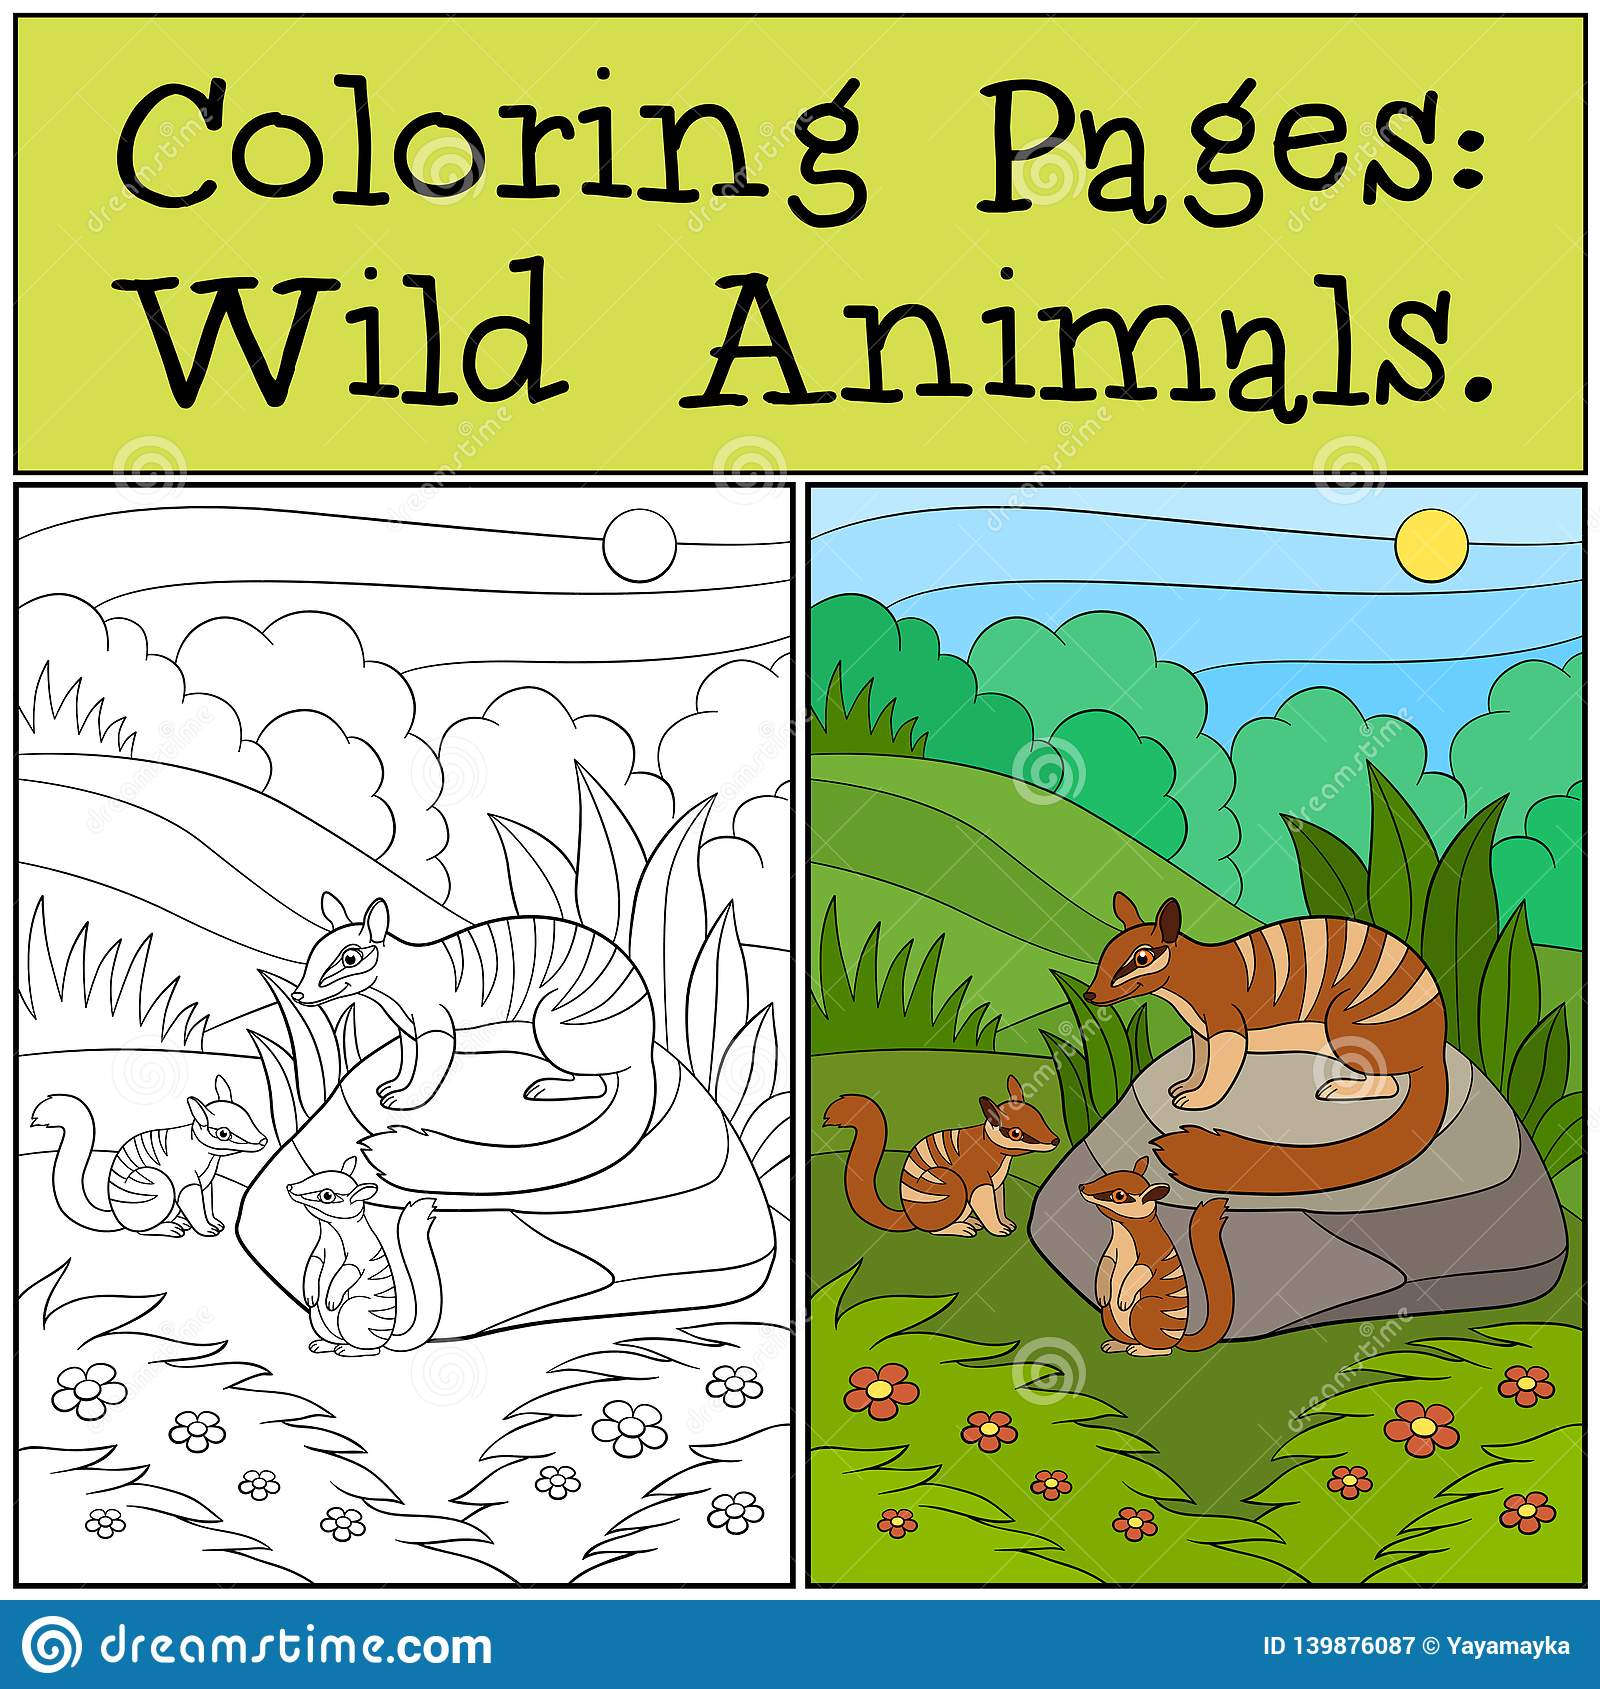 Coloring Pages: Wild Animals. Mother numbat with her babies